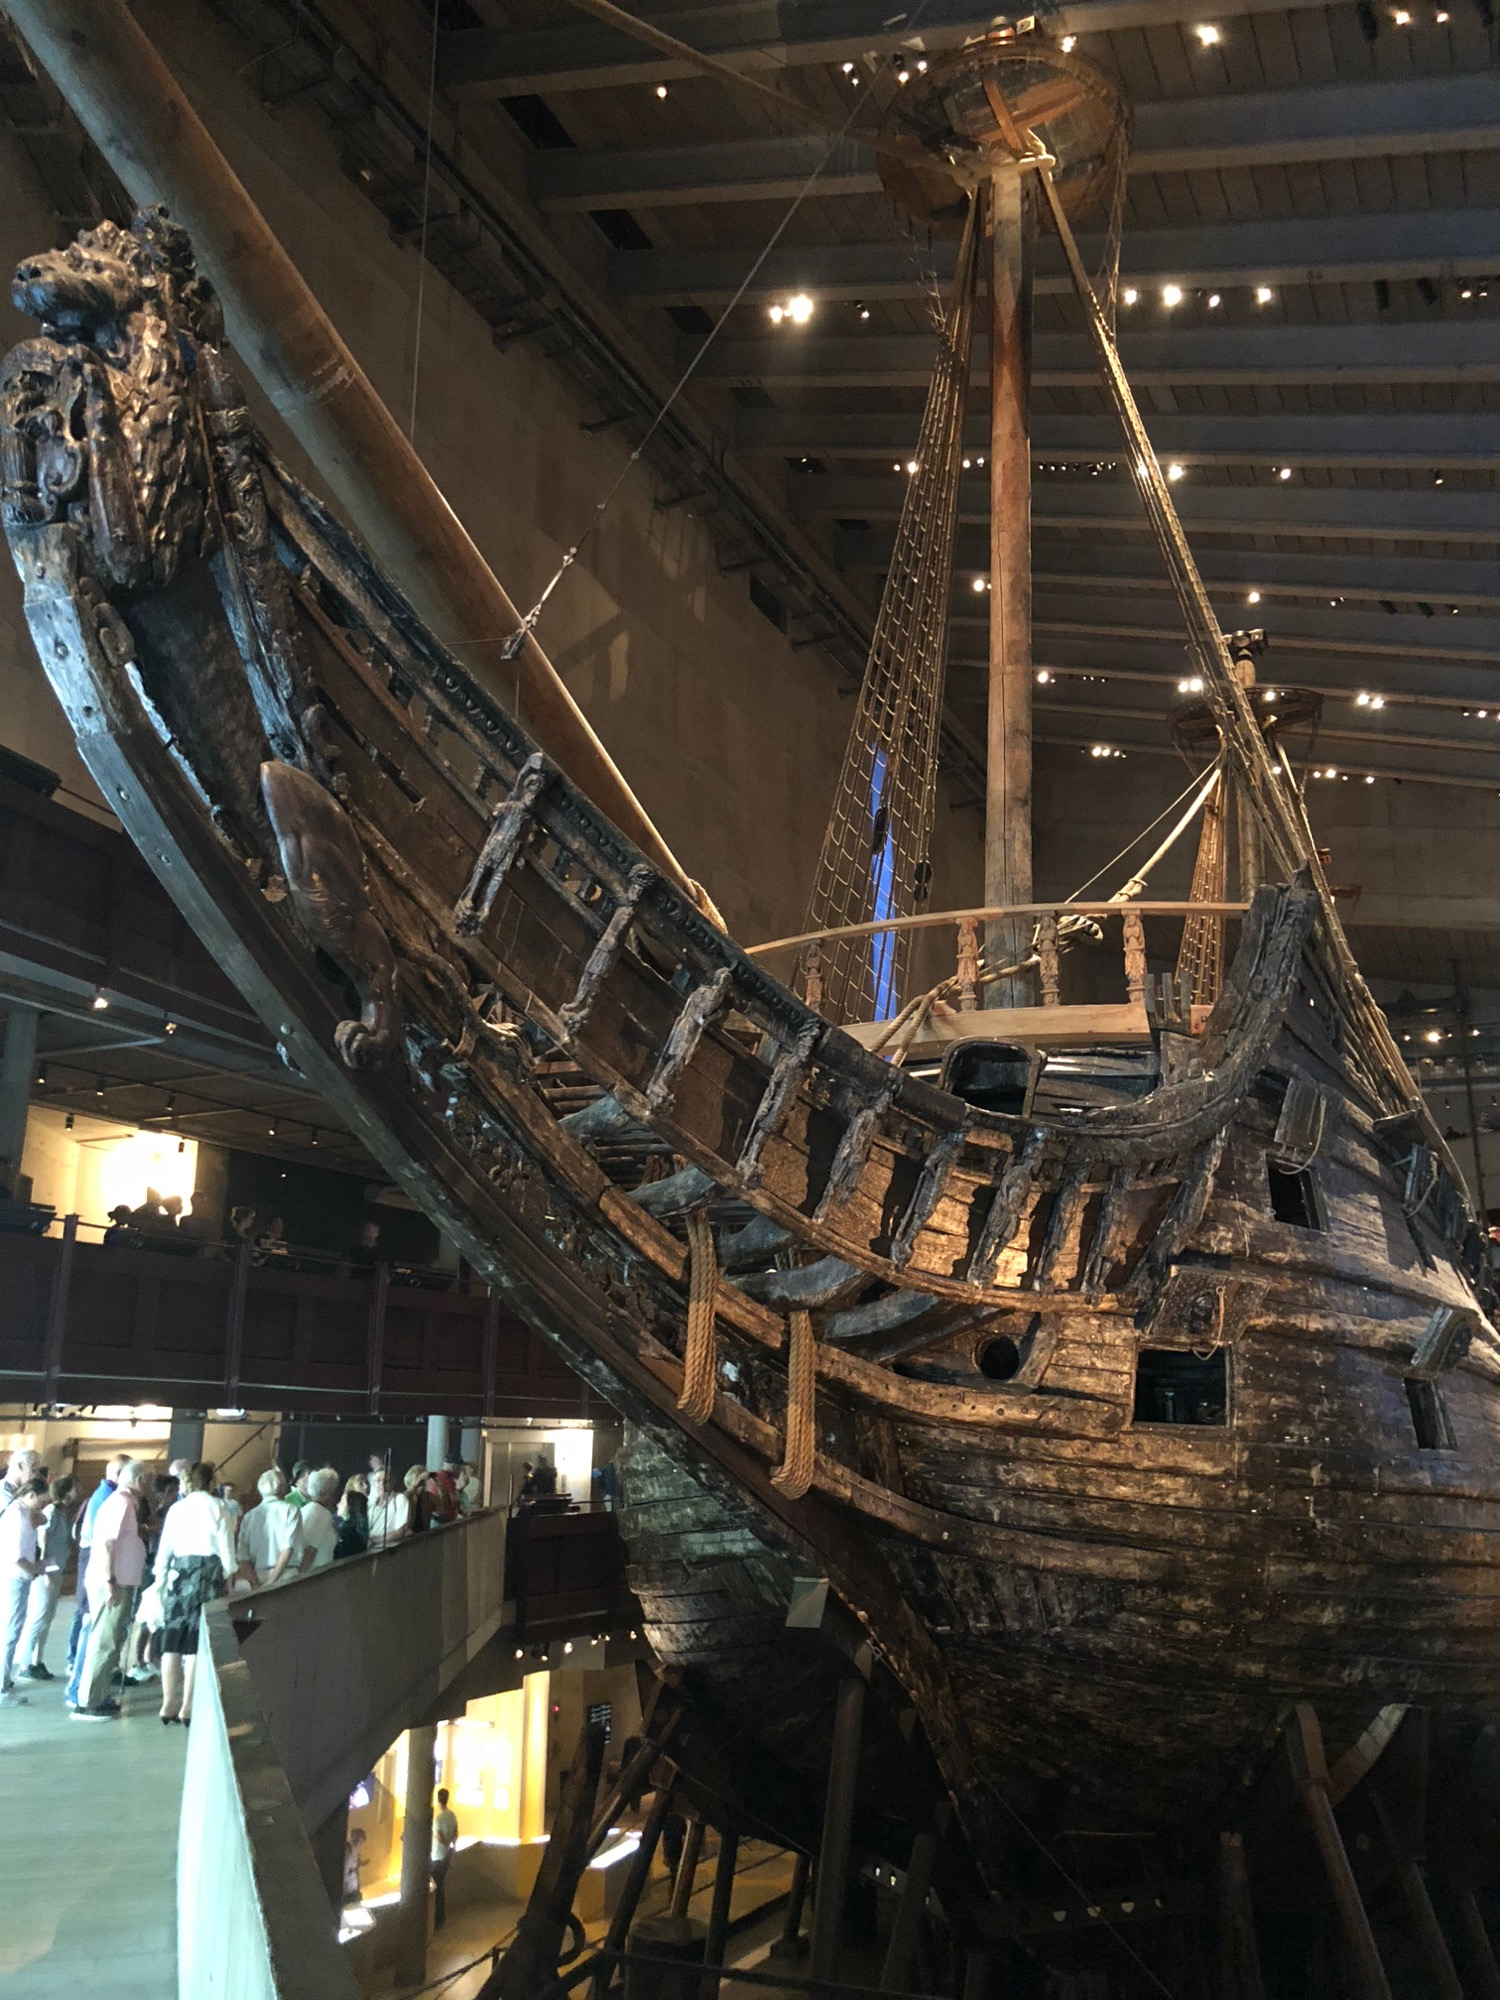 The Vasa - The coolest museum in Stockholm